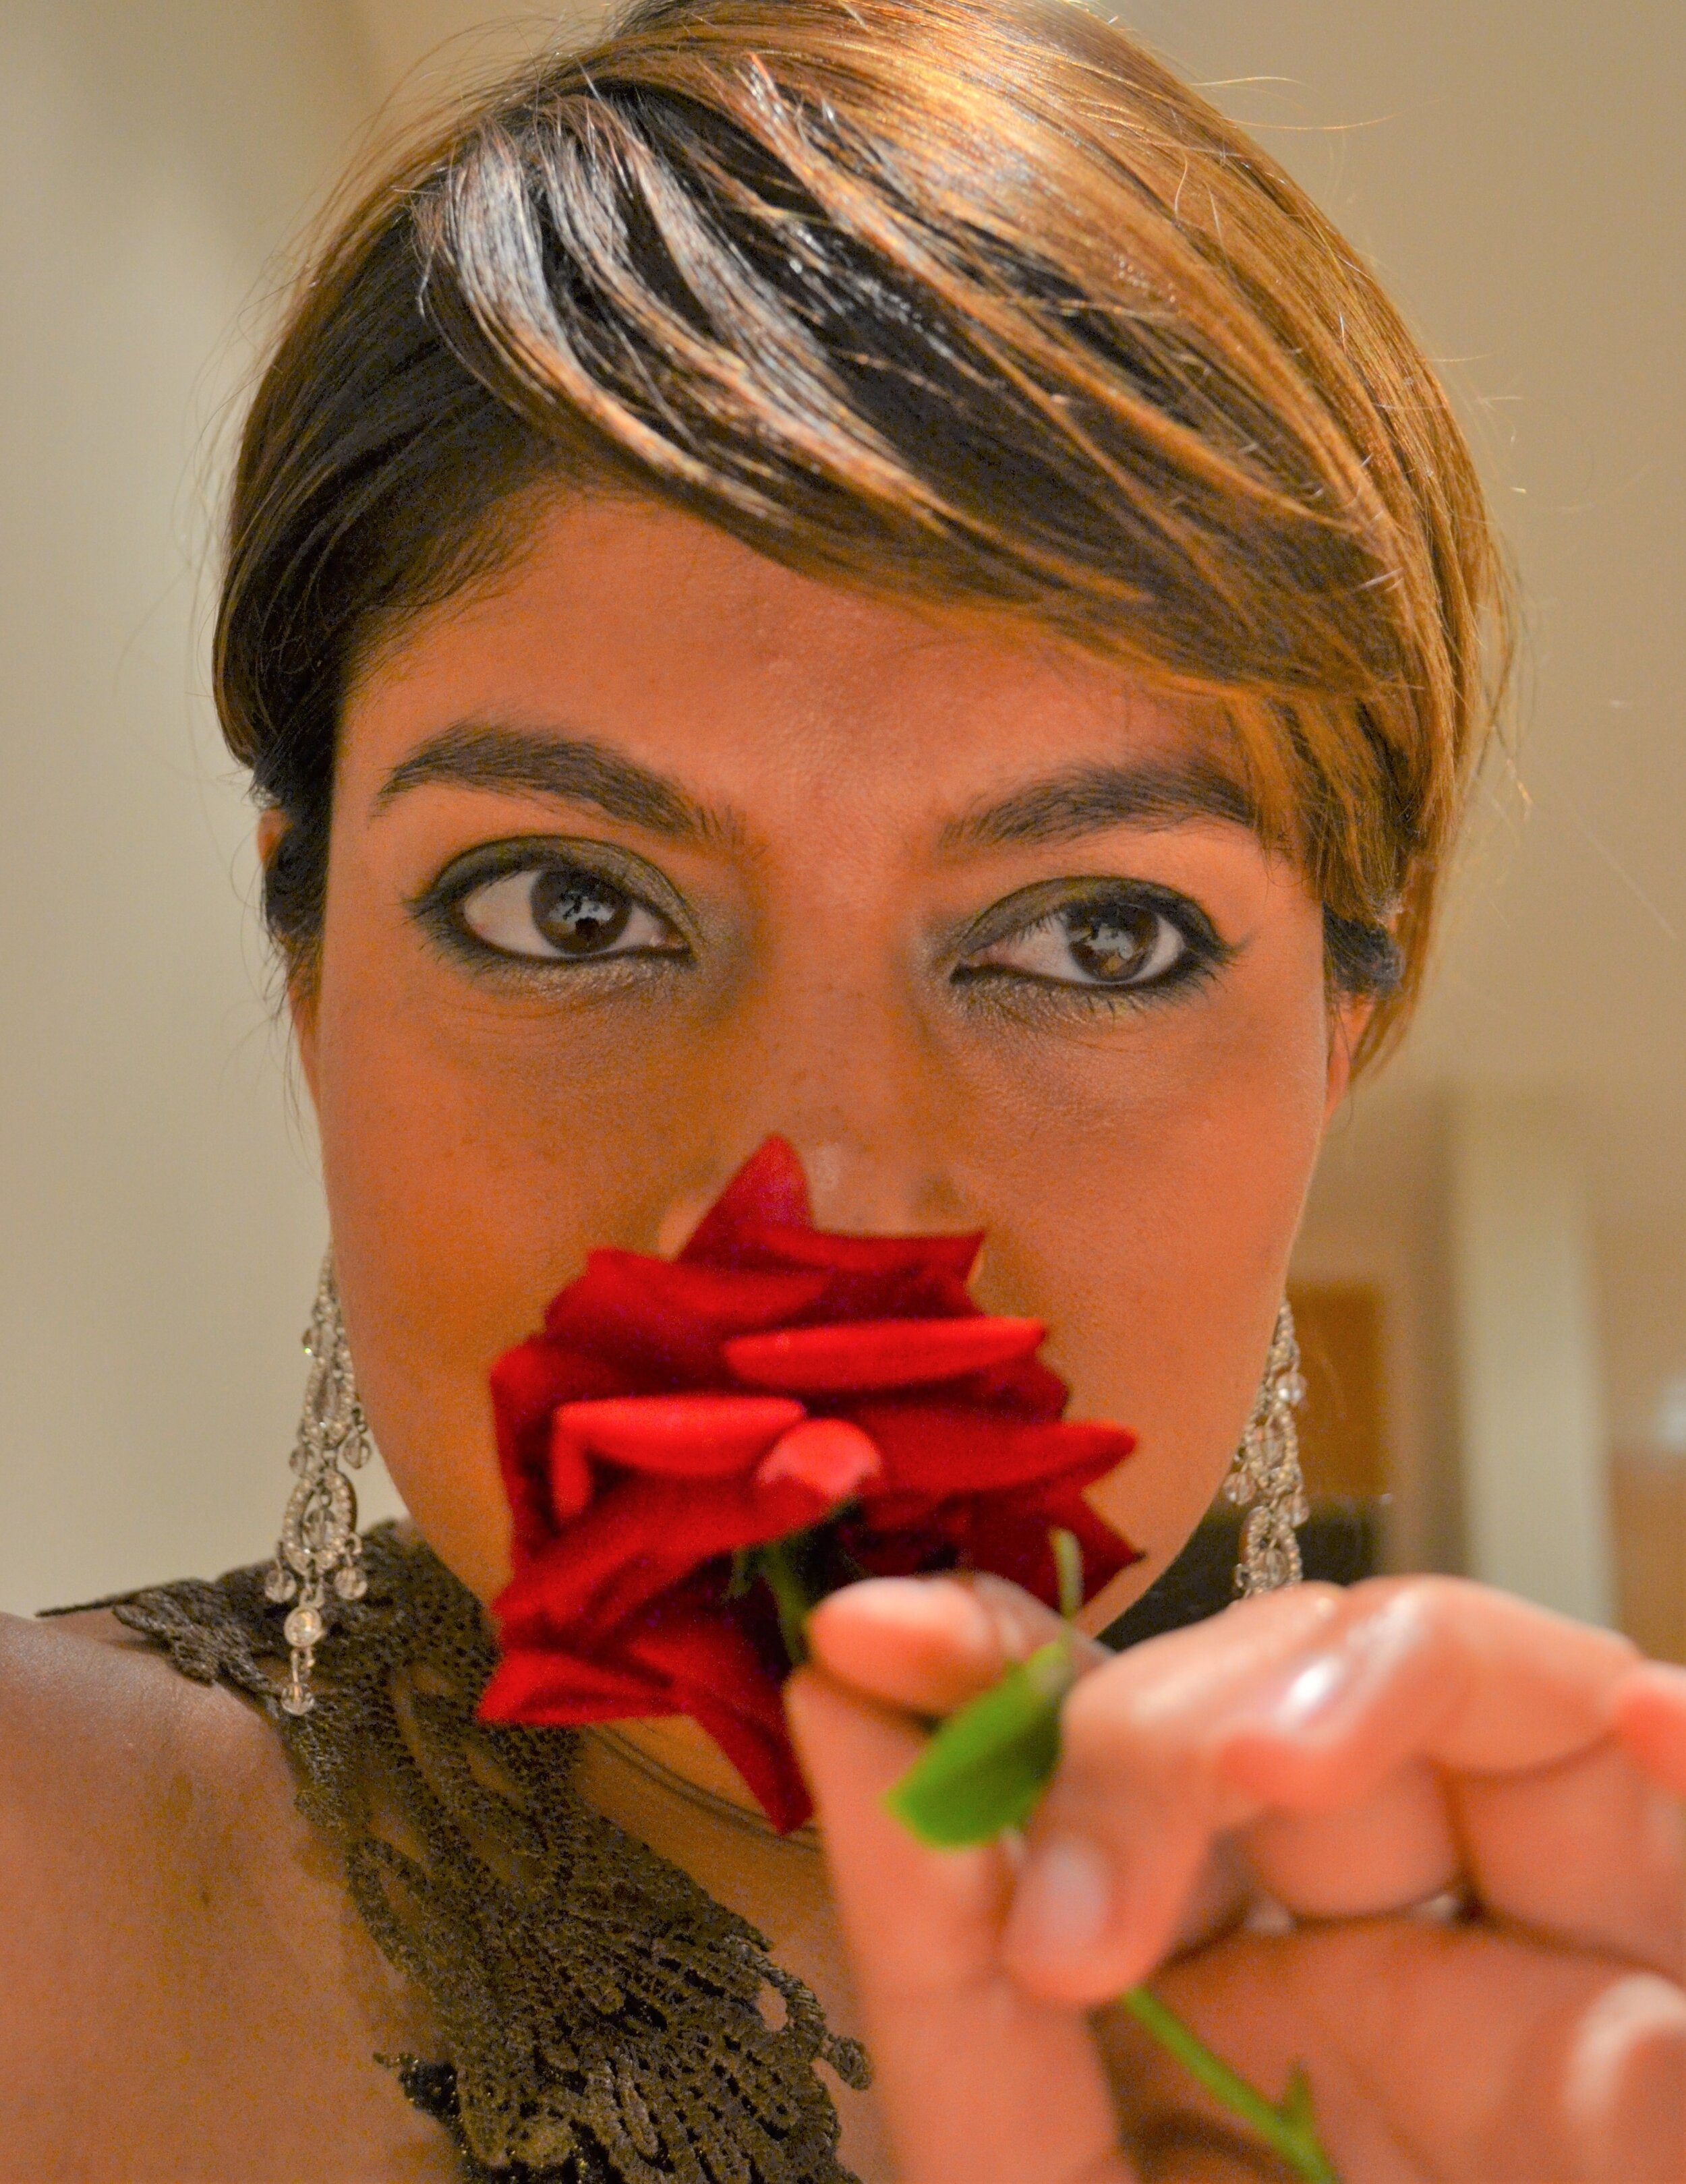 Afreen Age 35 with Holland Etoile rose from her garden. It's a heavenly scent!